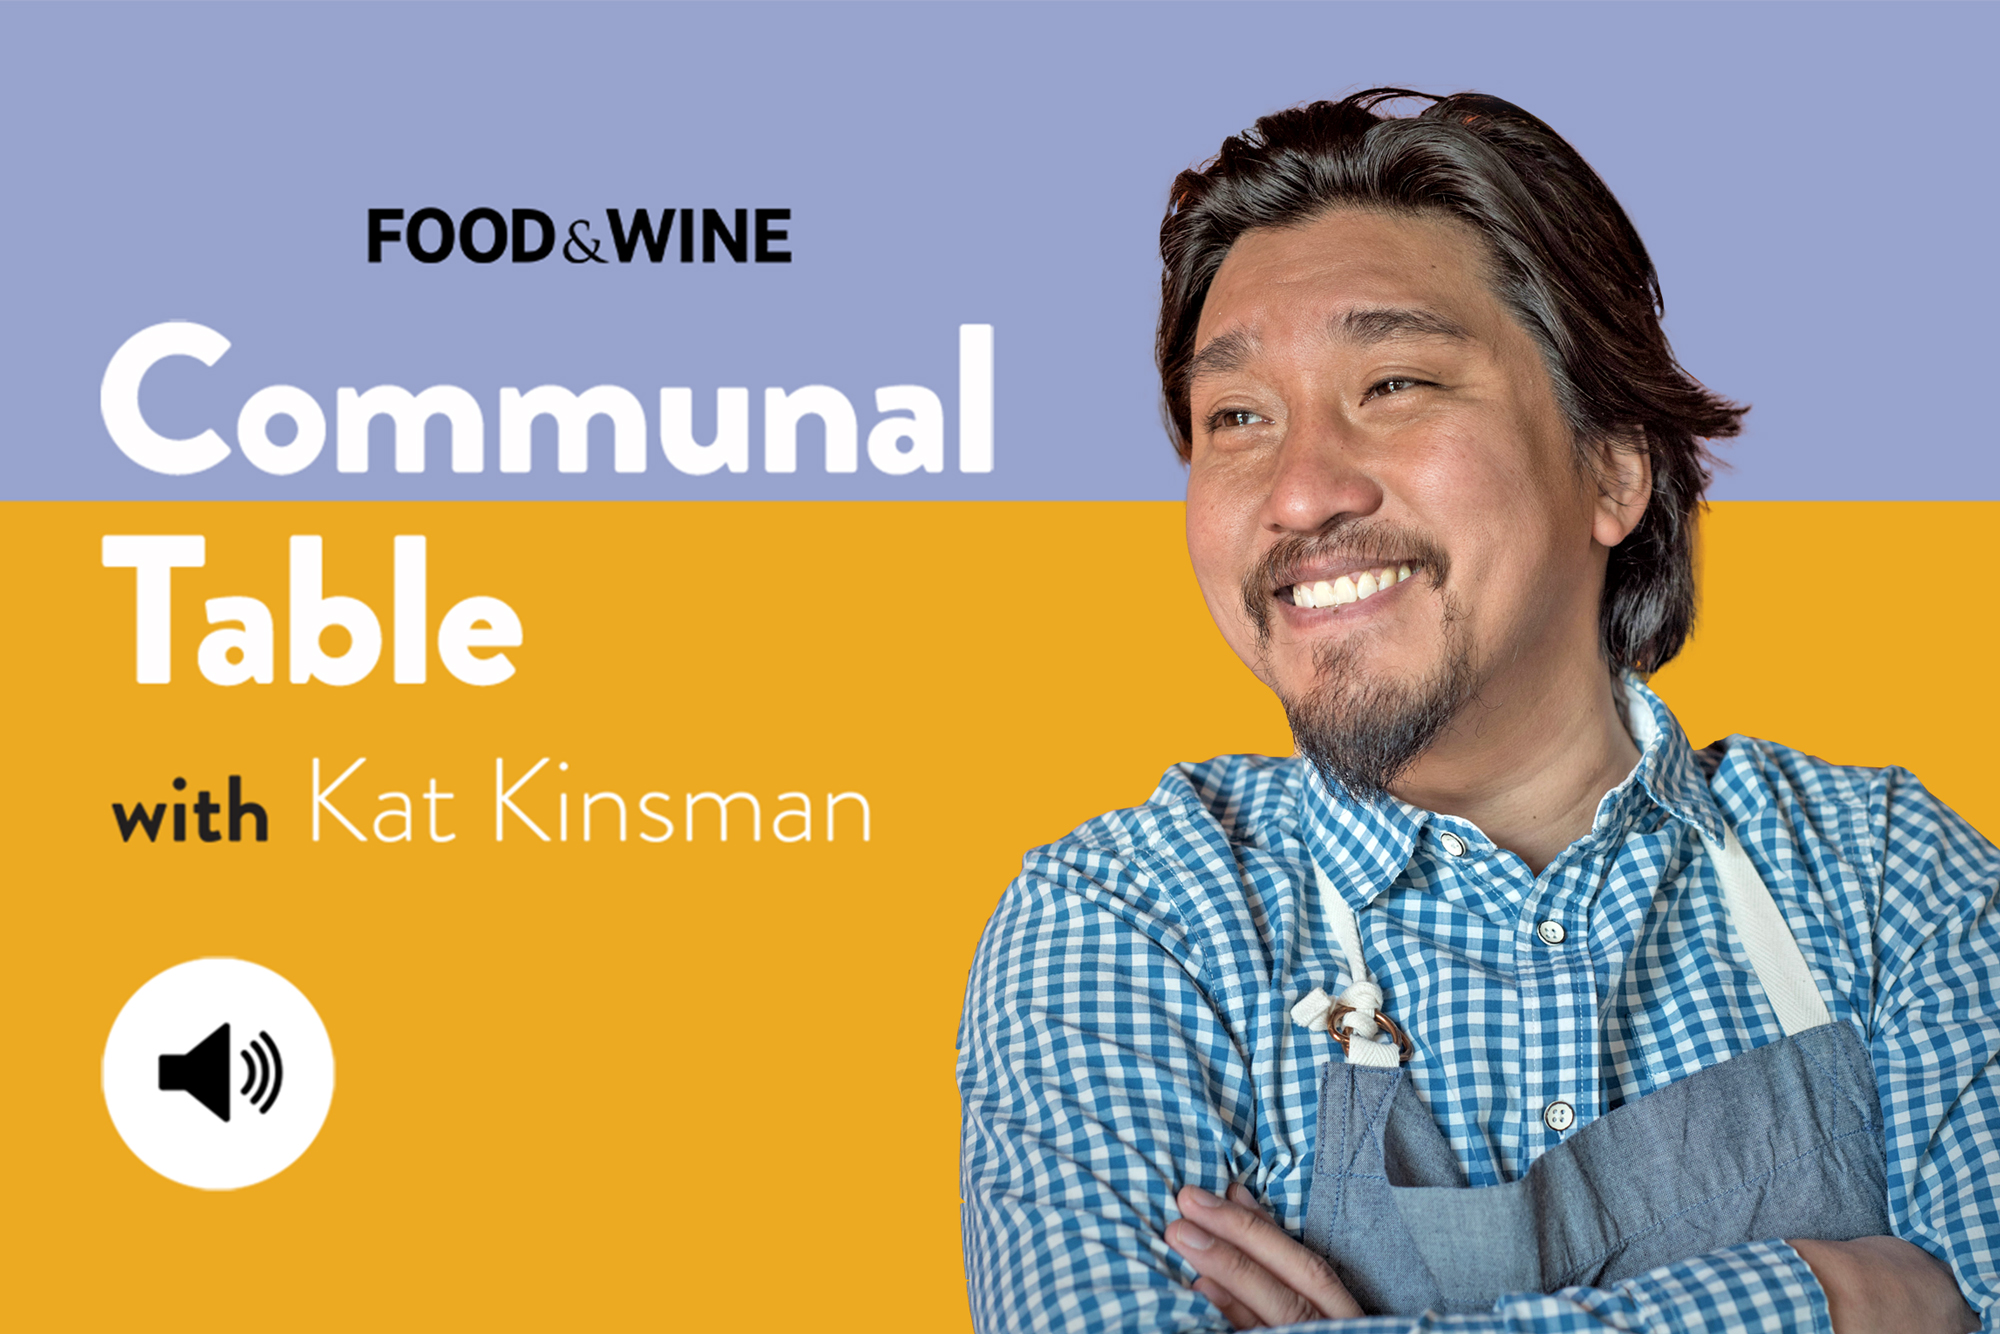 Communal Table with Kat Kinsman featuring Edward Lee